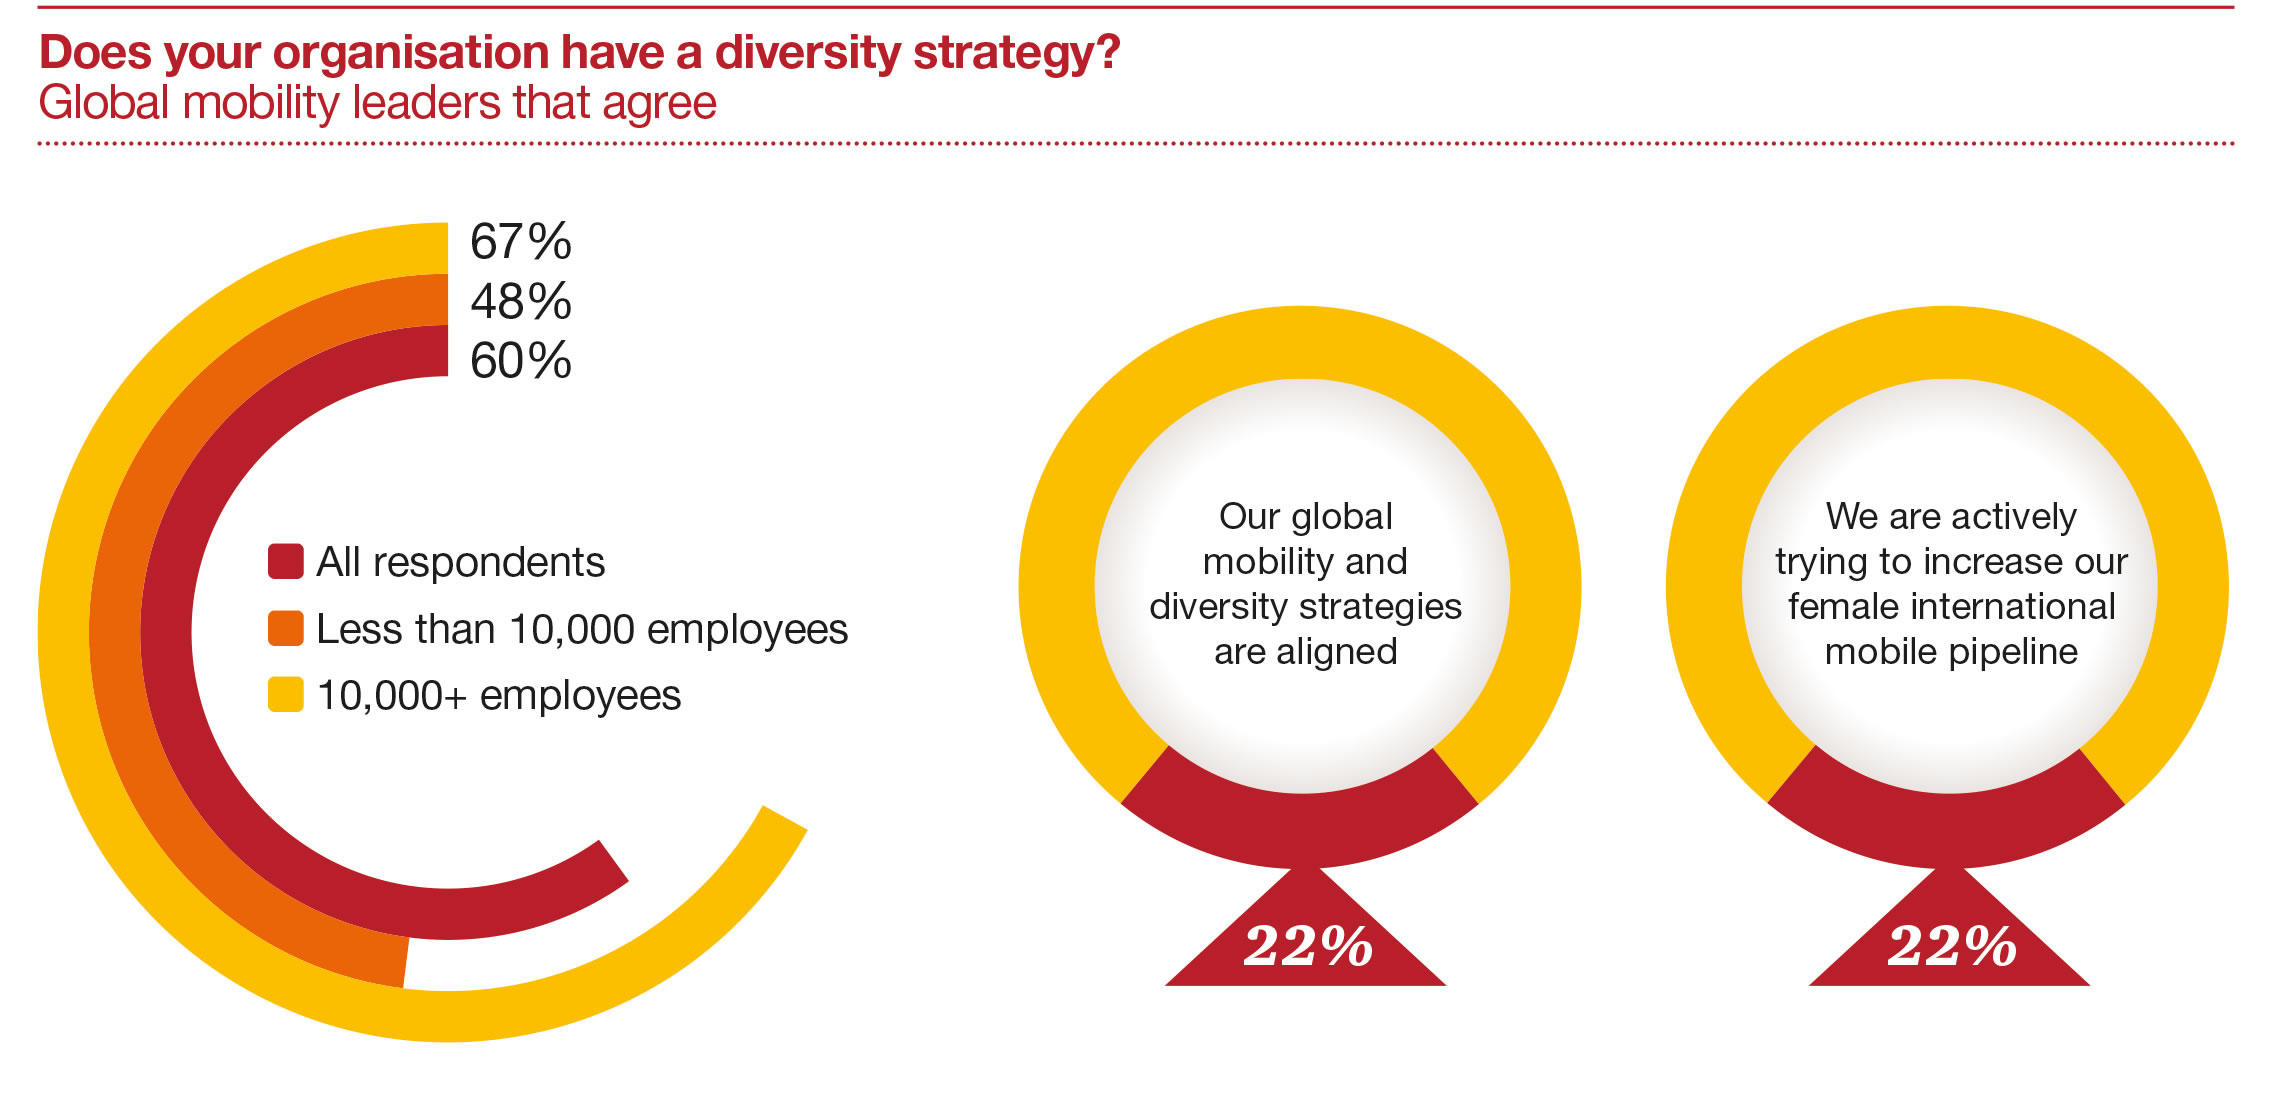 international women s day promoting international career at pwc i sponsor a diversity mandate focused on embedding diversity and inclusion throughout our network ensuring alignment among our talent mobility and